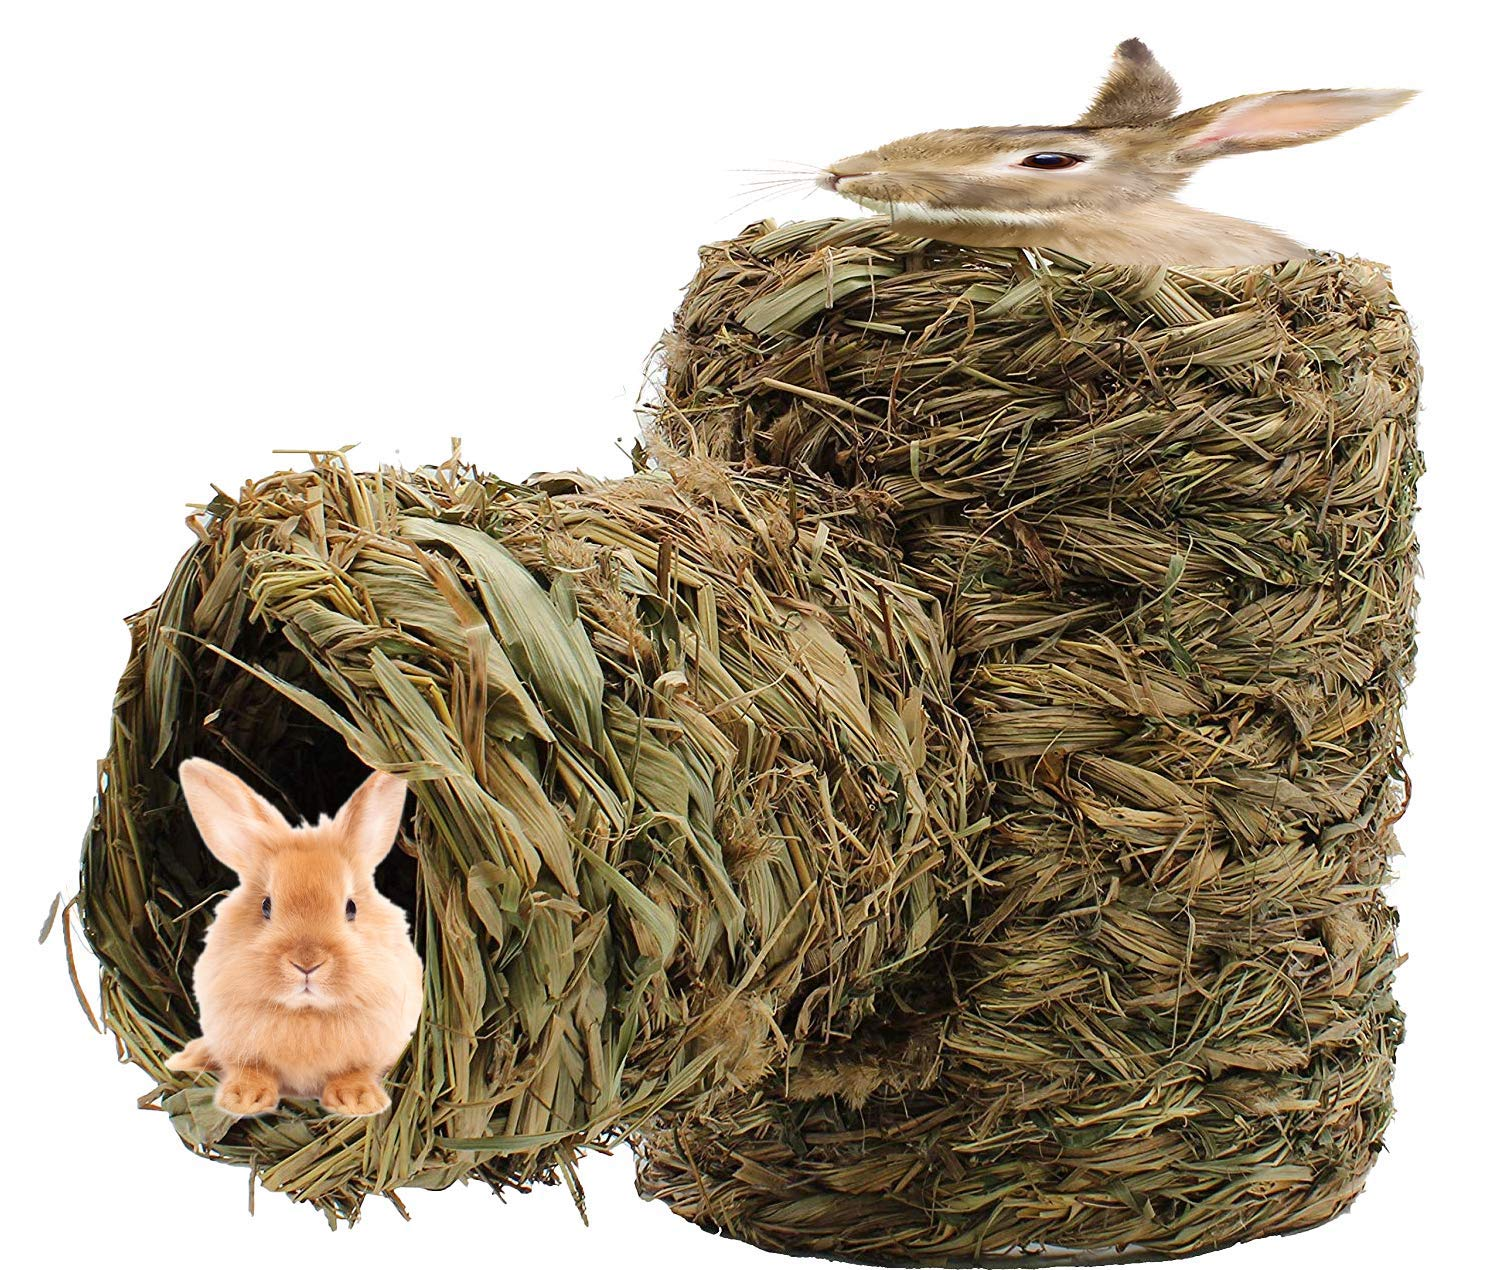 Royal Brands Natural Hideaway Grass Hay Rabbit Tunnel Play Small Animal Toy Hamster Guinea Pig Rat Ferret Hedgehog Prairie Dog Houses